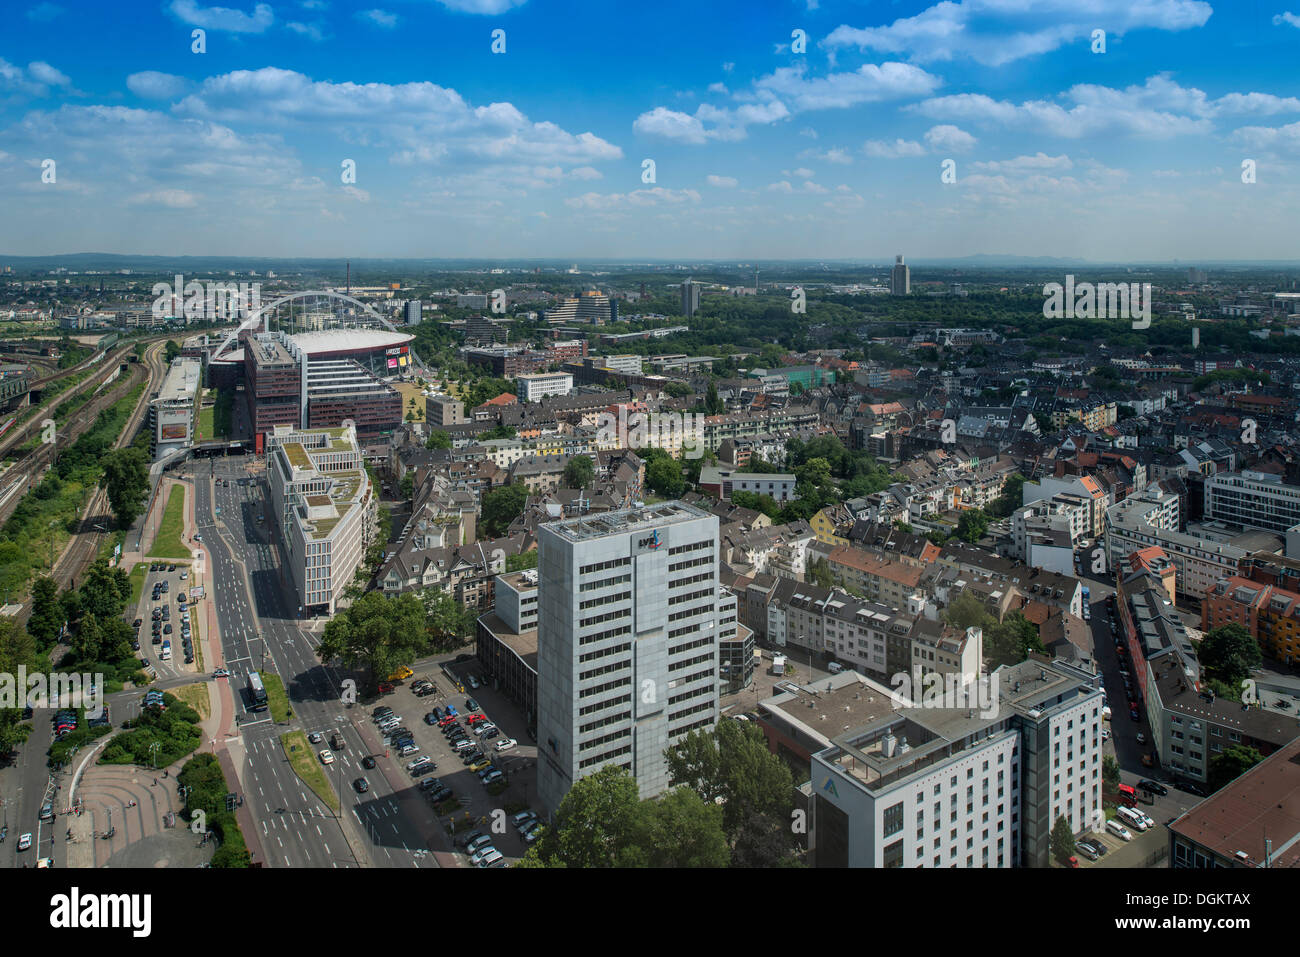 View of Cologne Deutz with the railway station forecourt, LVR Tower, Cologne Arena, Bergisches Land region - Stock Image